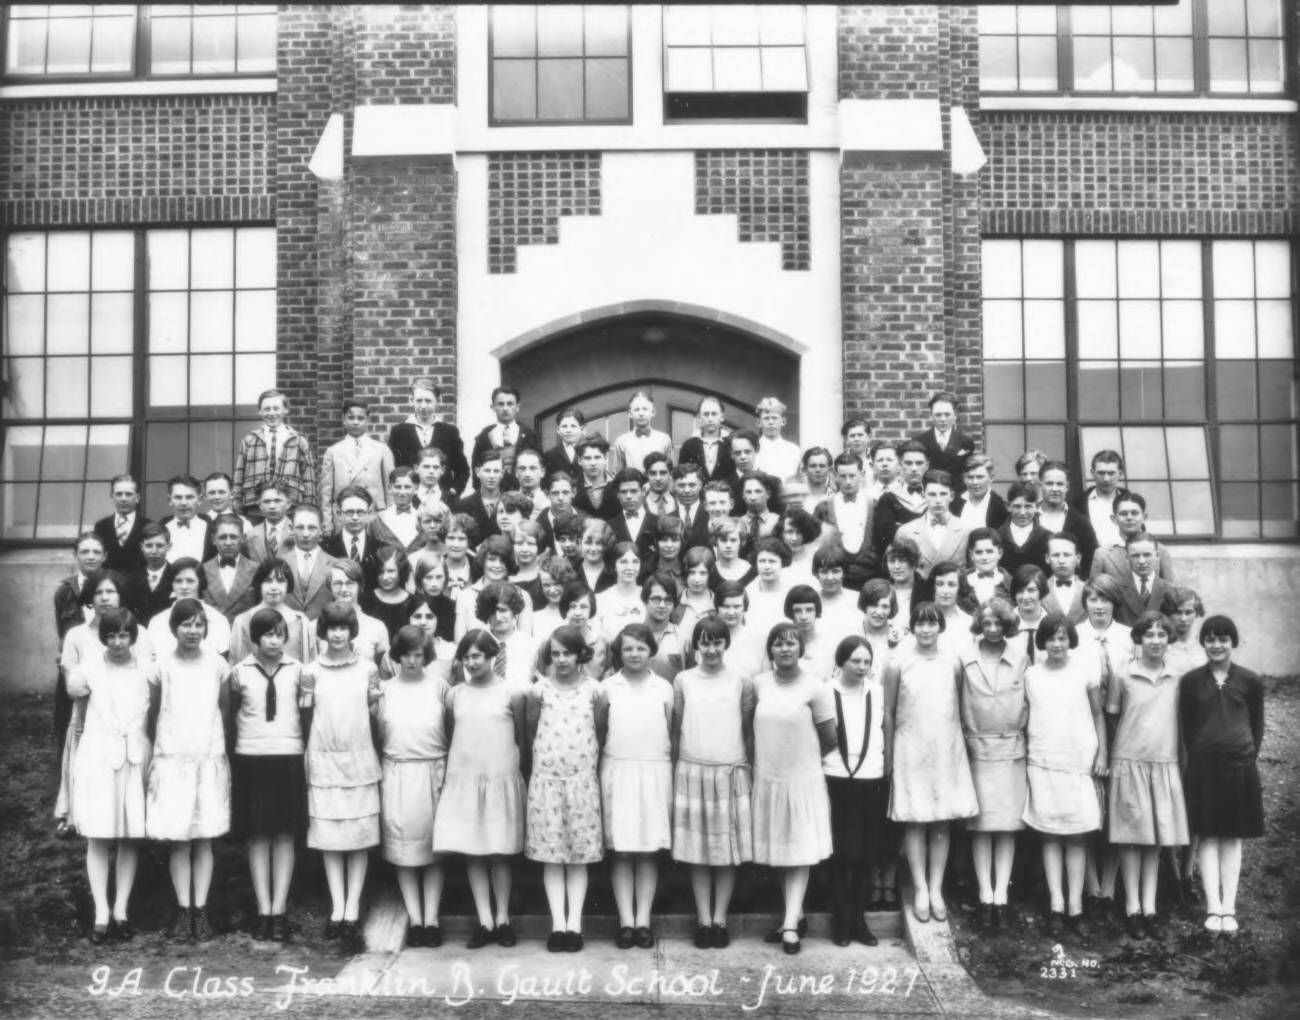 Do you know someone who was part of this 9th grade class